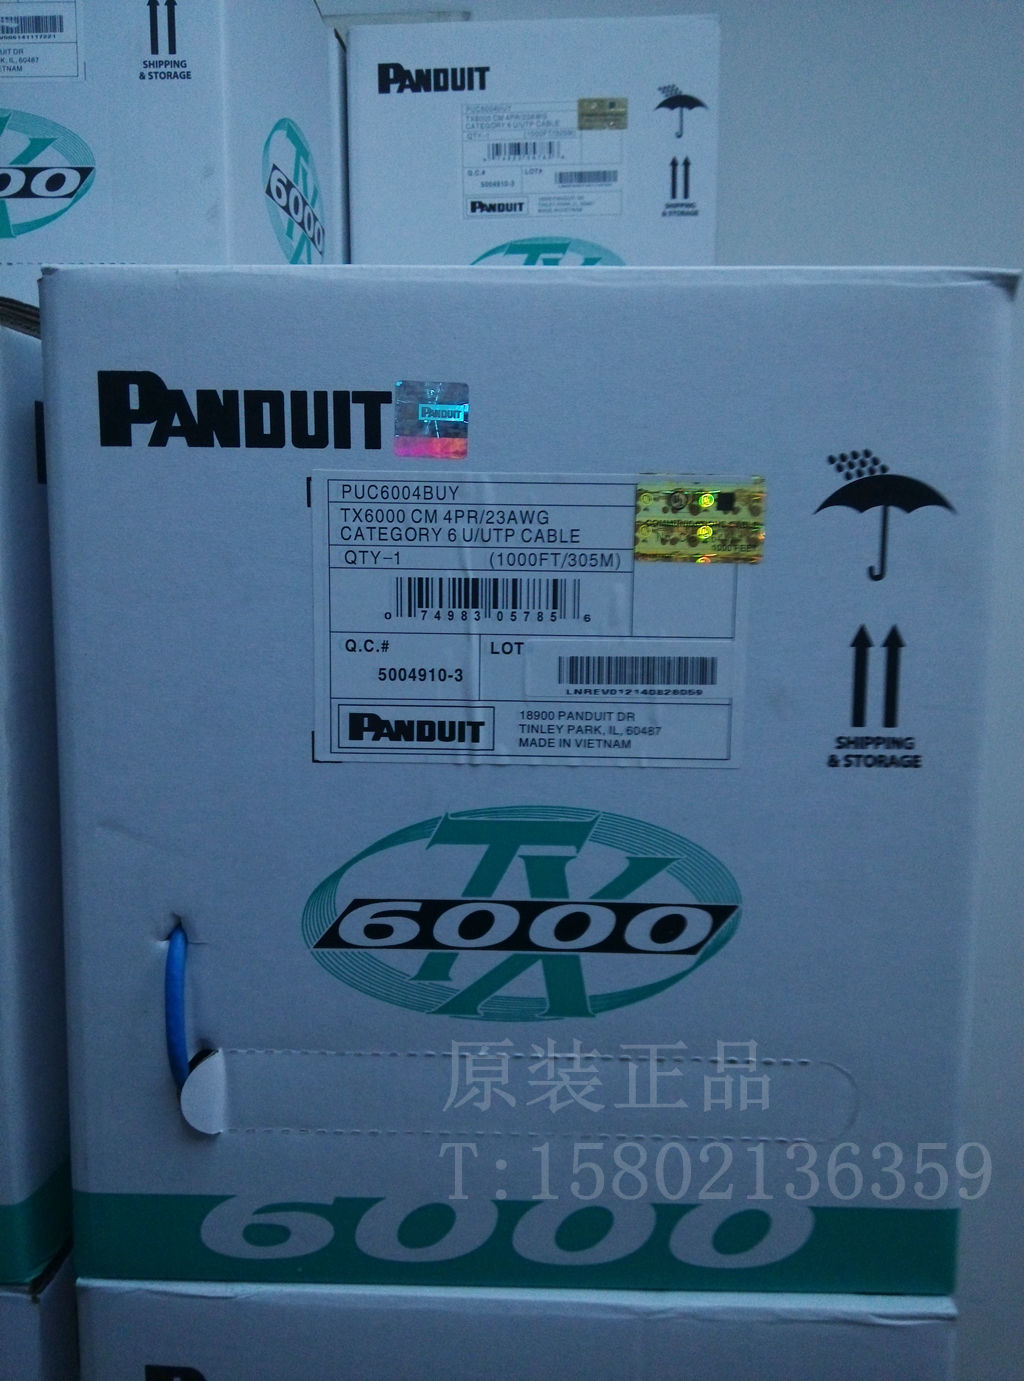 Panduit six types of unshielded cable PUC6004BUY 23 wire gauge ...